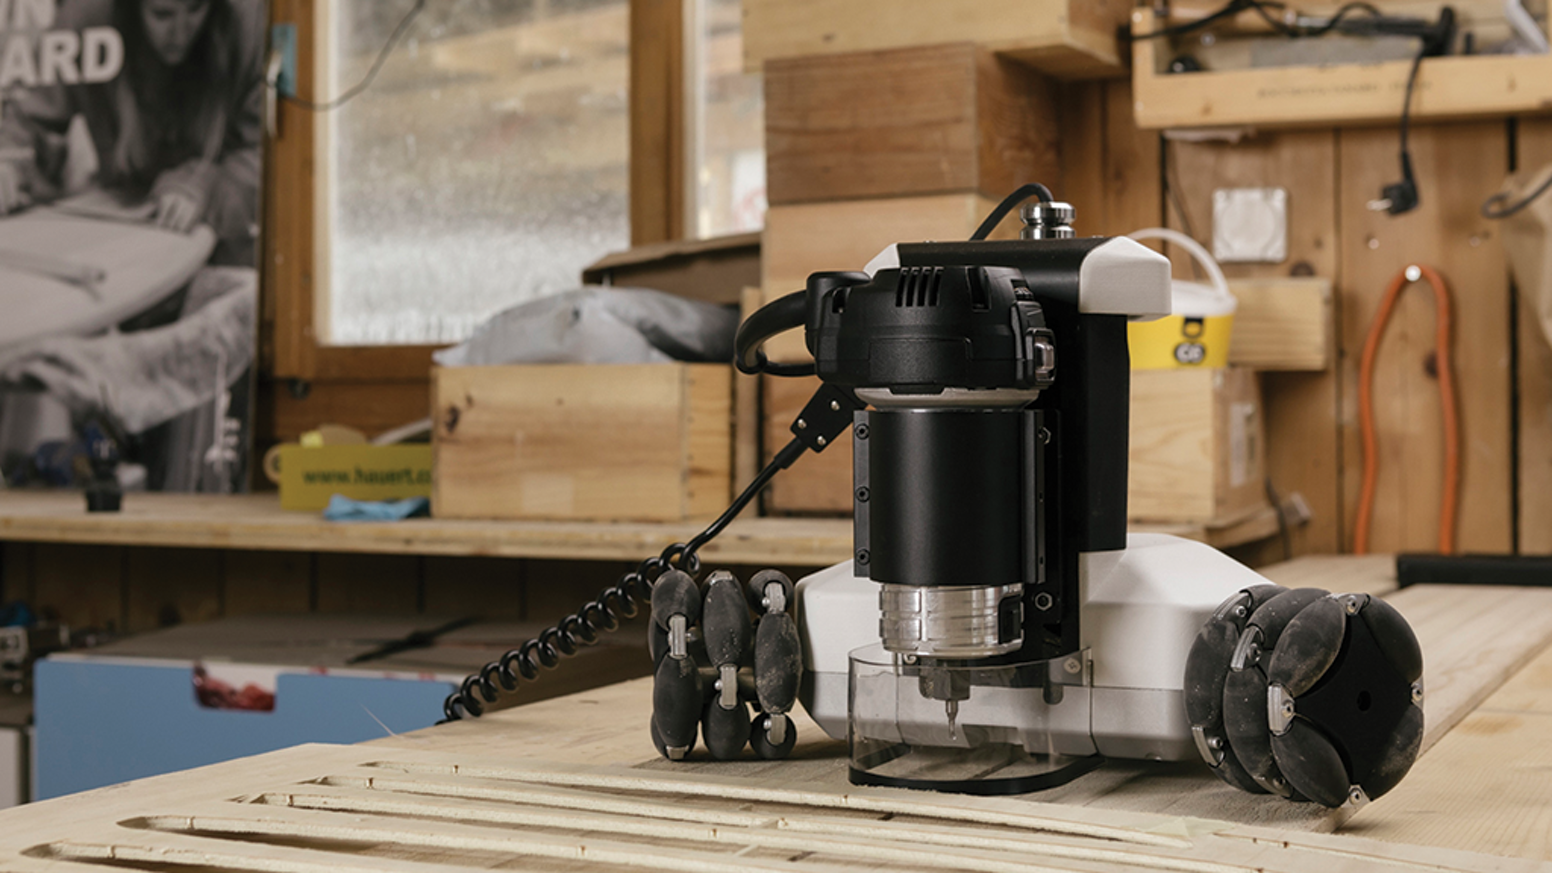 A portable robot that mills, cuts, and engraves to turn BIG ideas into  tangible